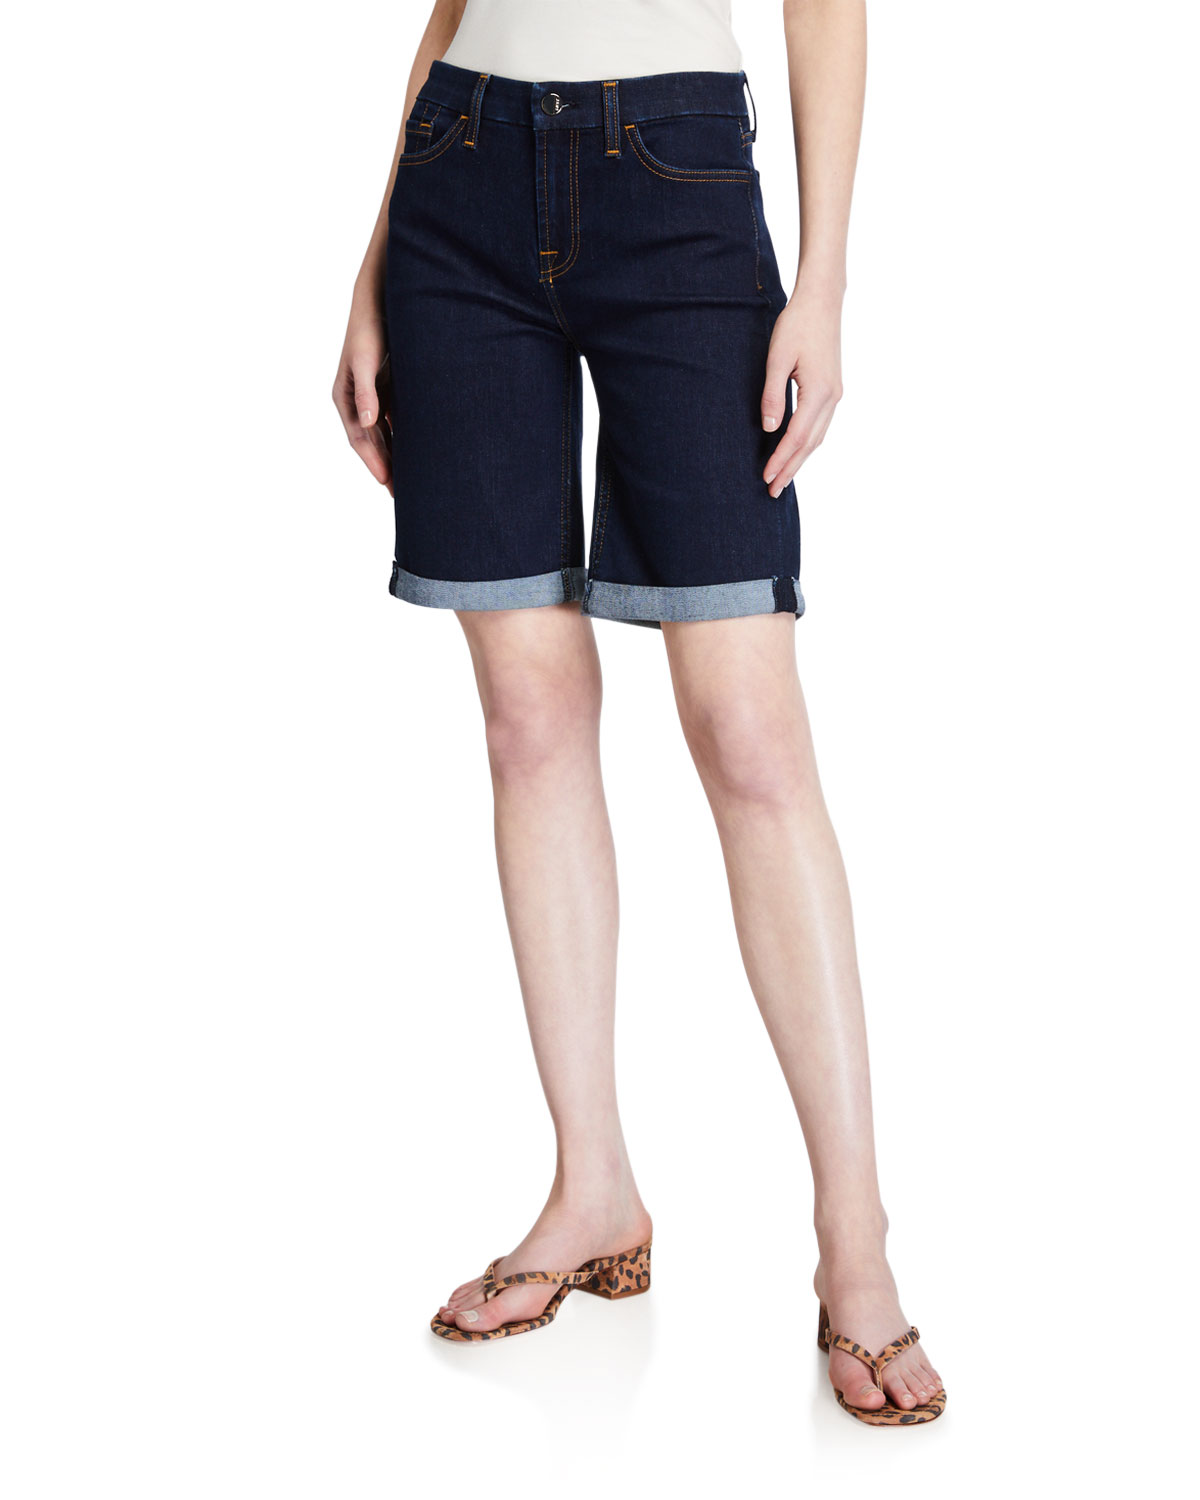 Jen7 by 7 for All Mankind Mid-Rise Bermuda Shorts